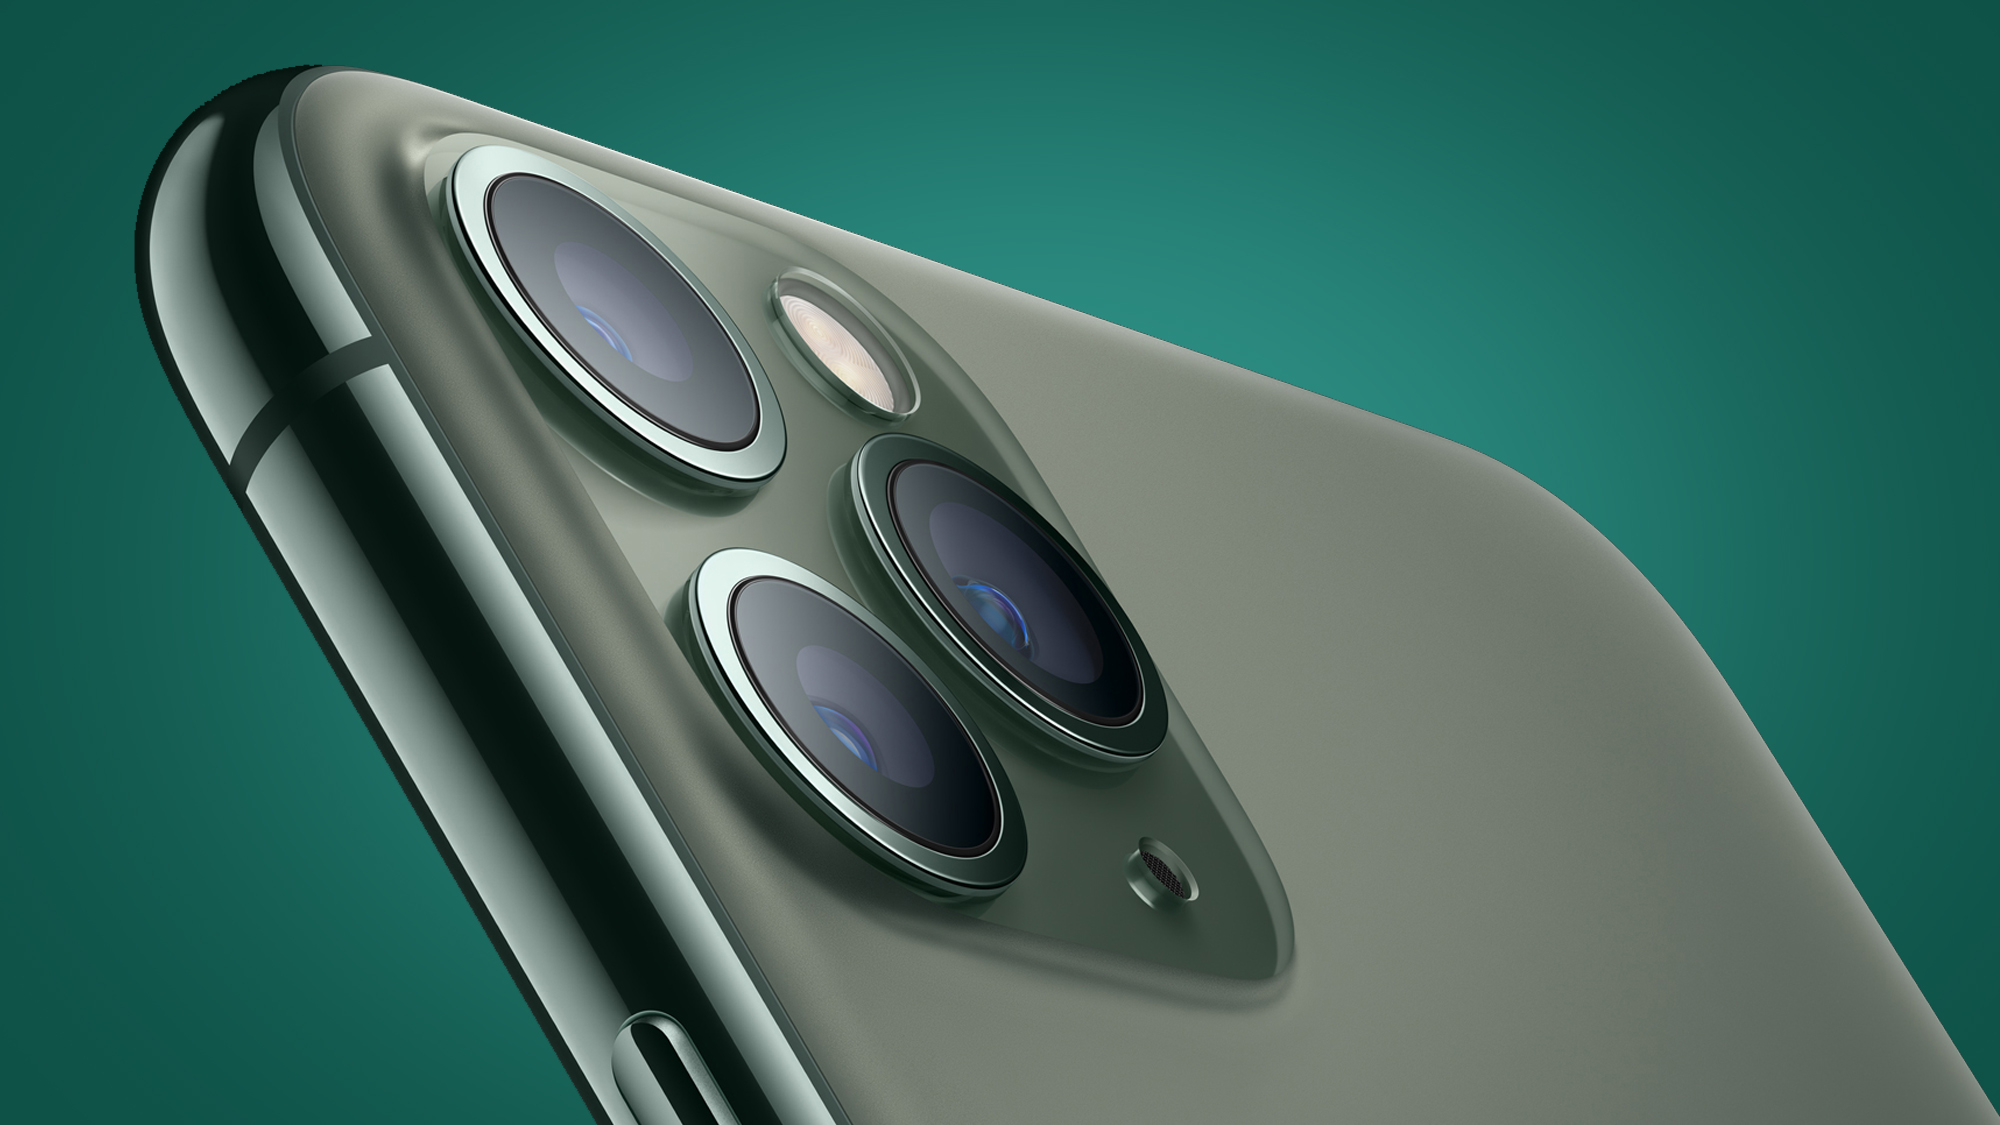 Iphone 12 May Come With A 20w Charger In The Box But What Does That Mean Techradar